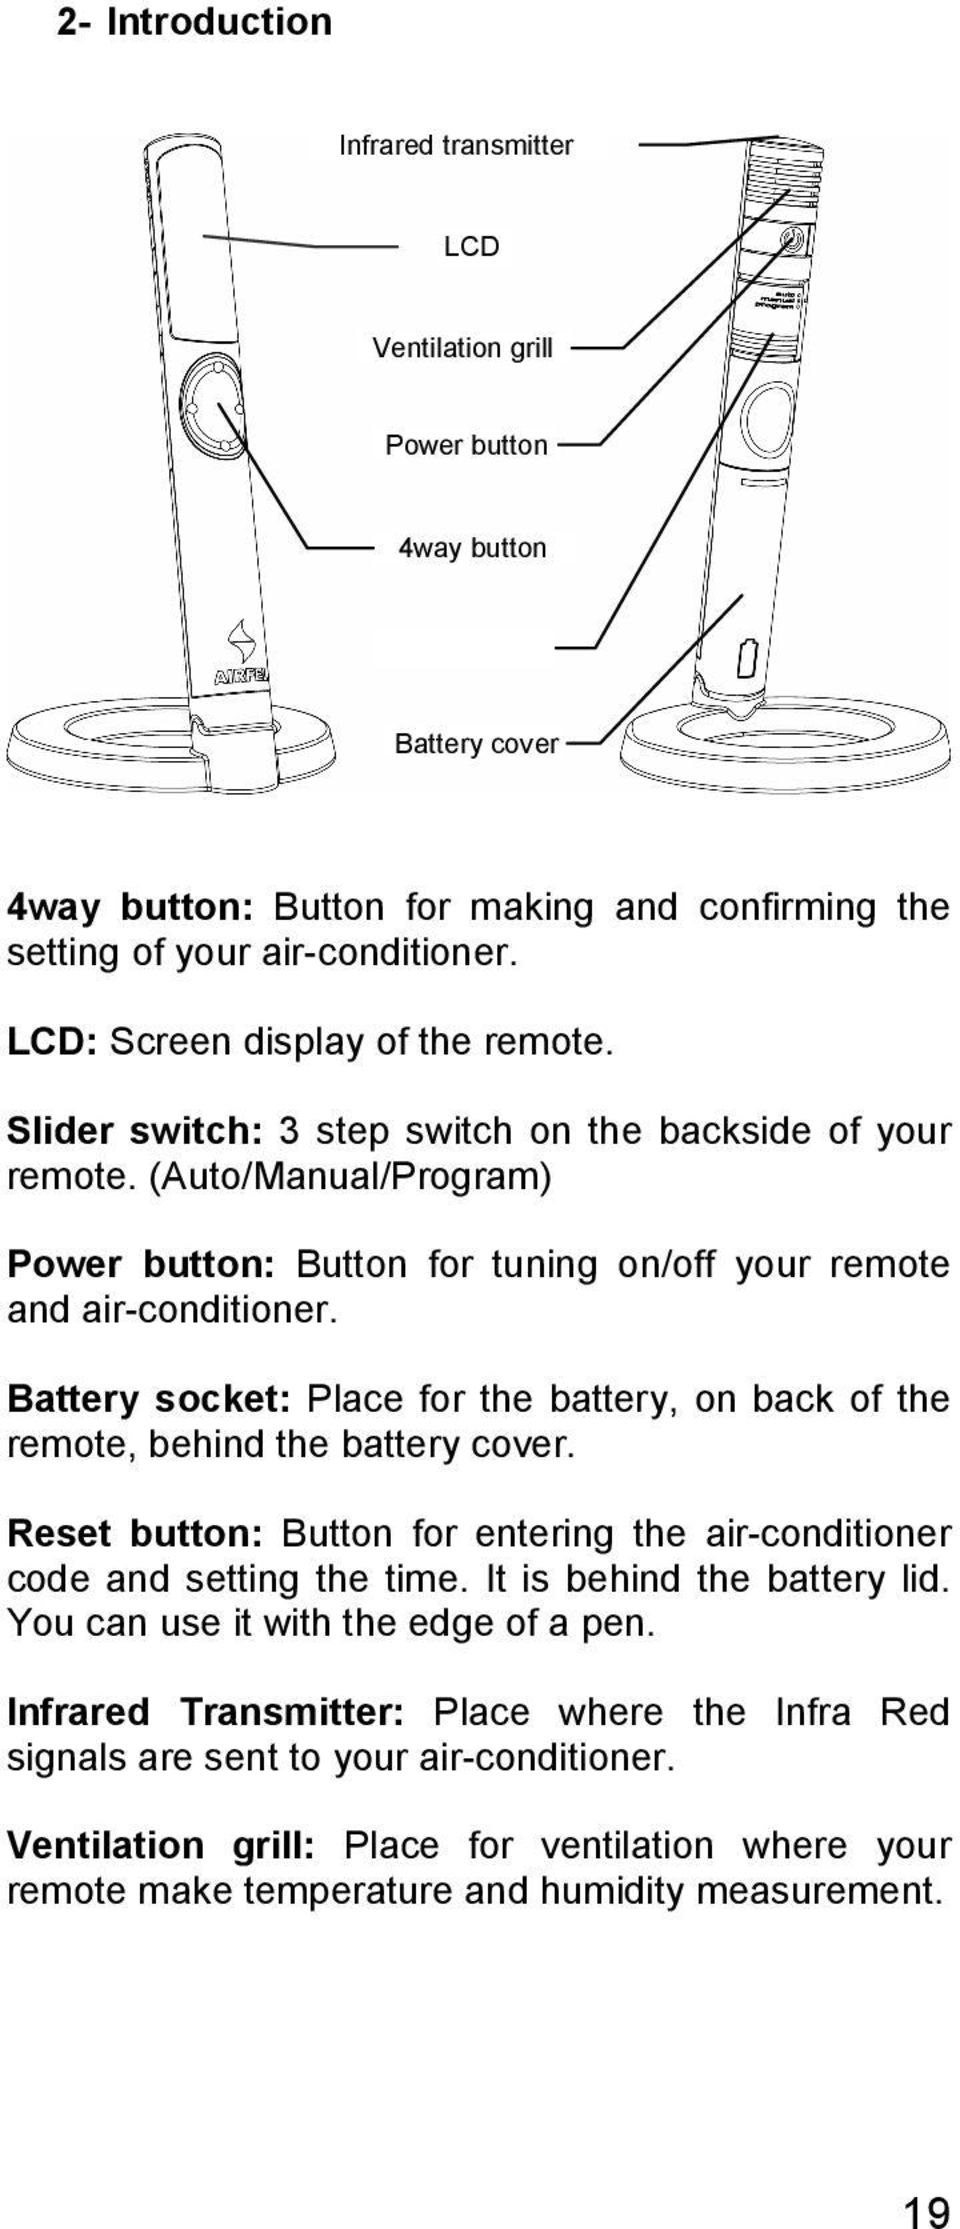 Battery socket: Place for the battery, on back of the remote, behind the battery cover. Reset button: Button for entering the air-conditioner code and setting the time. It is behind the battery lid.